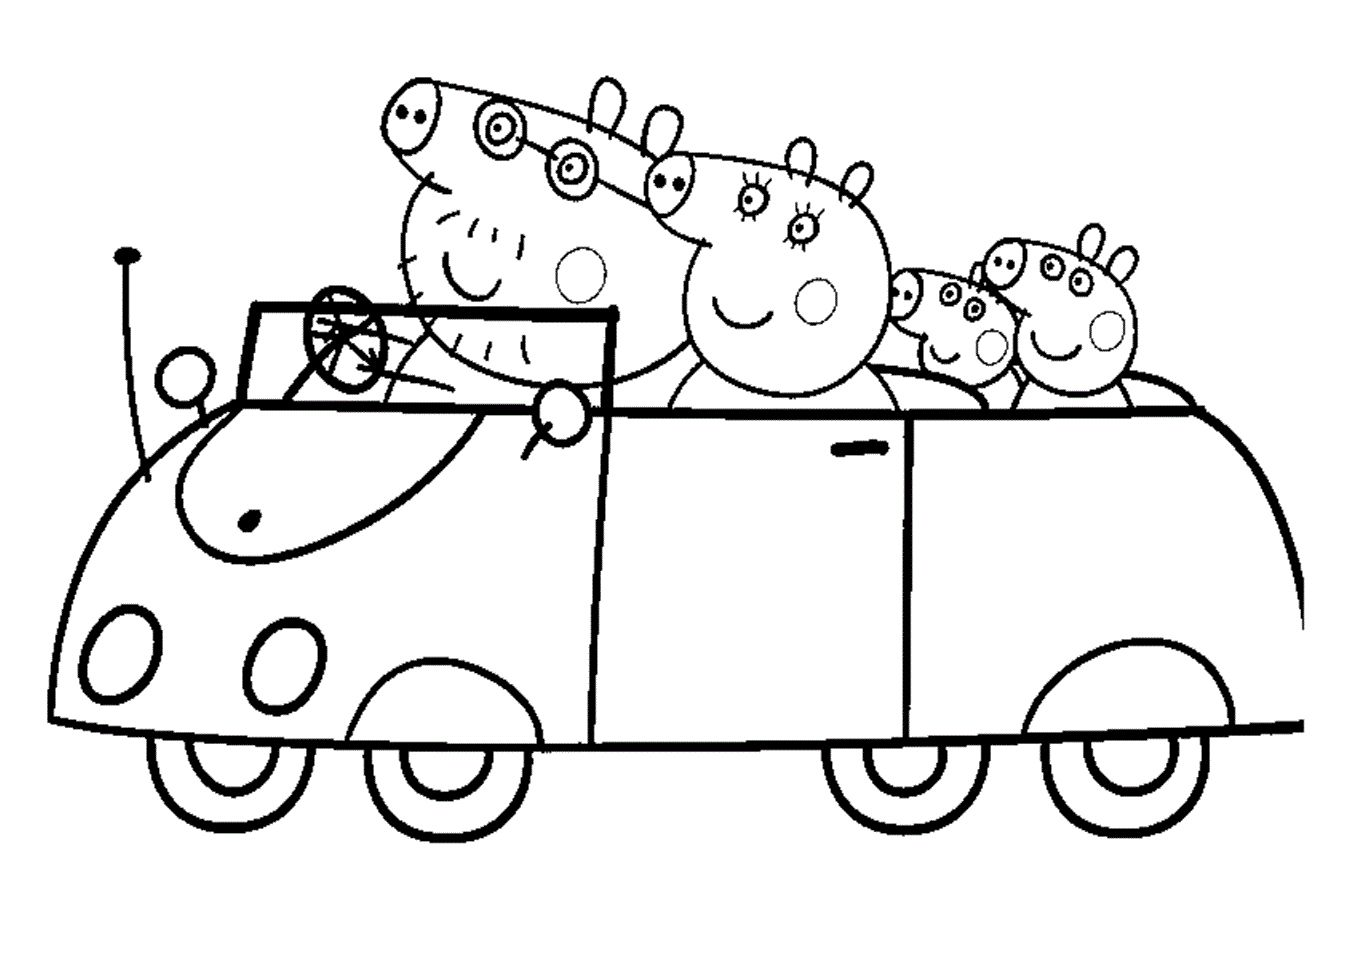 Peppa Pig Printable Coloring Pages Coloring Pages Peppa